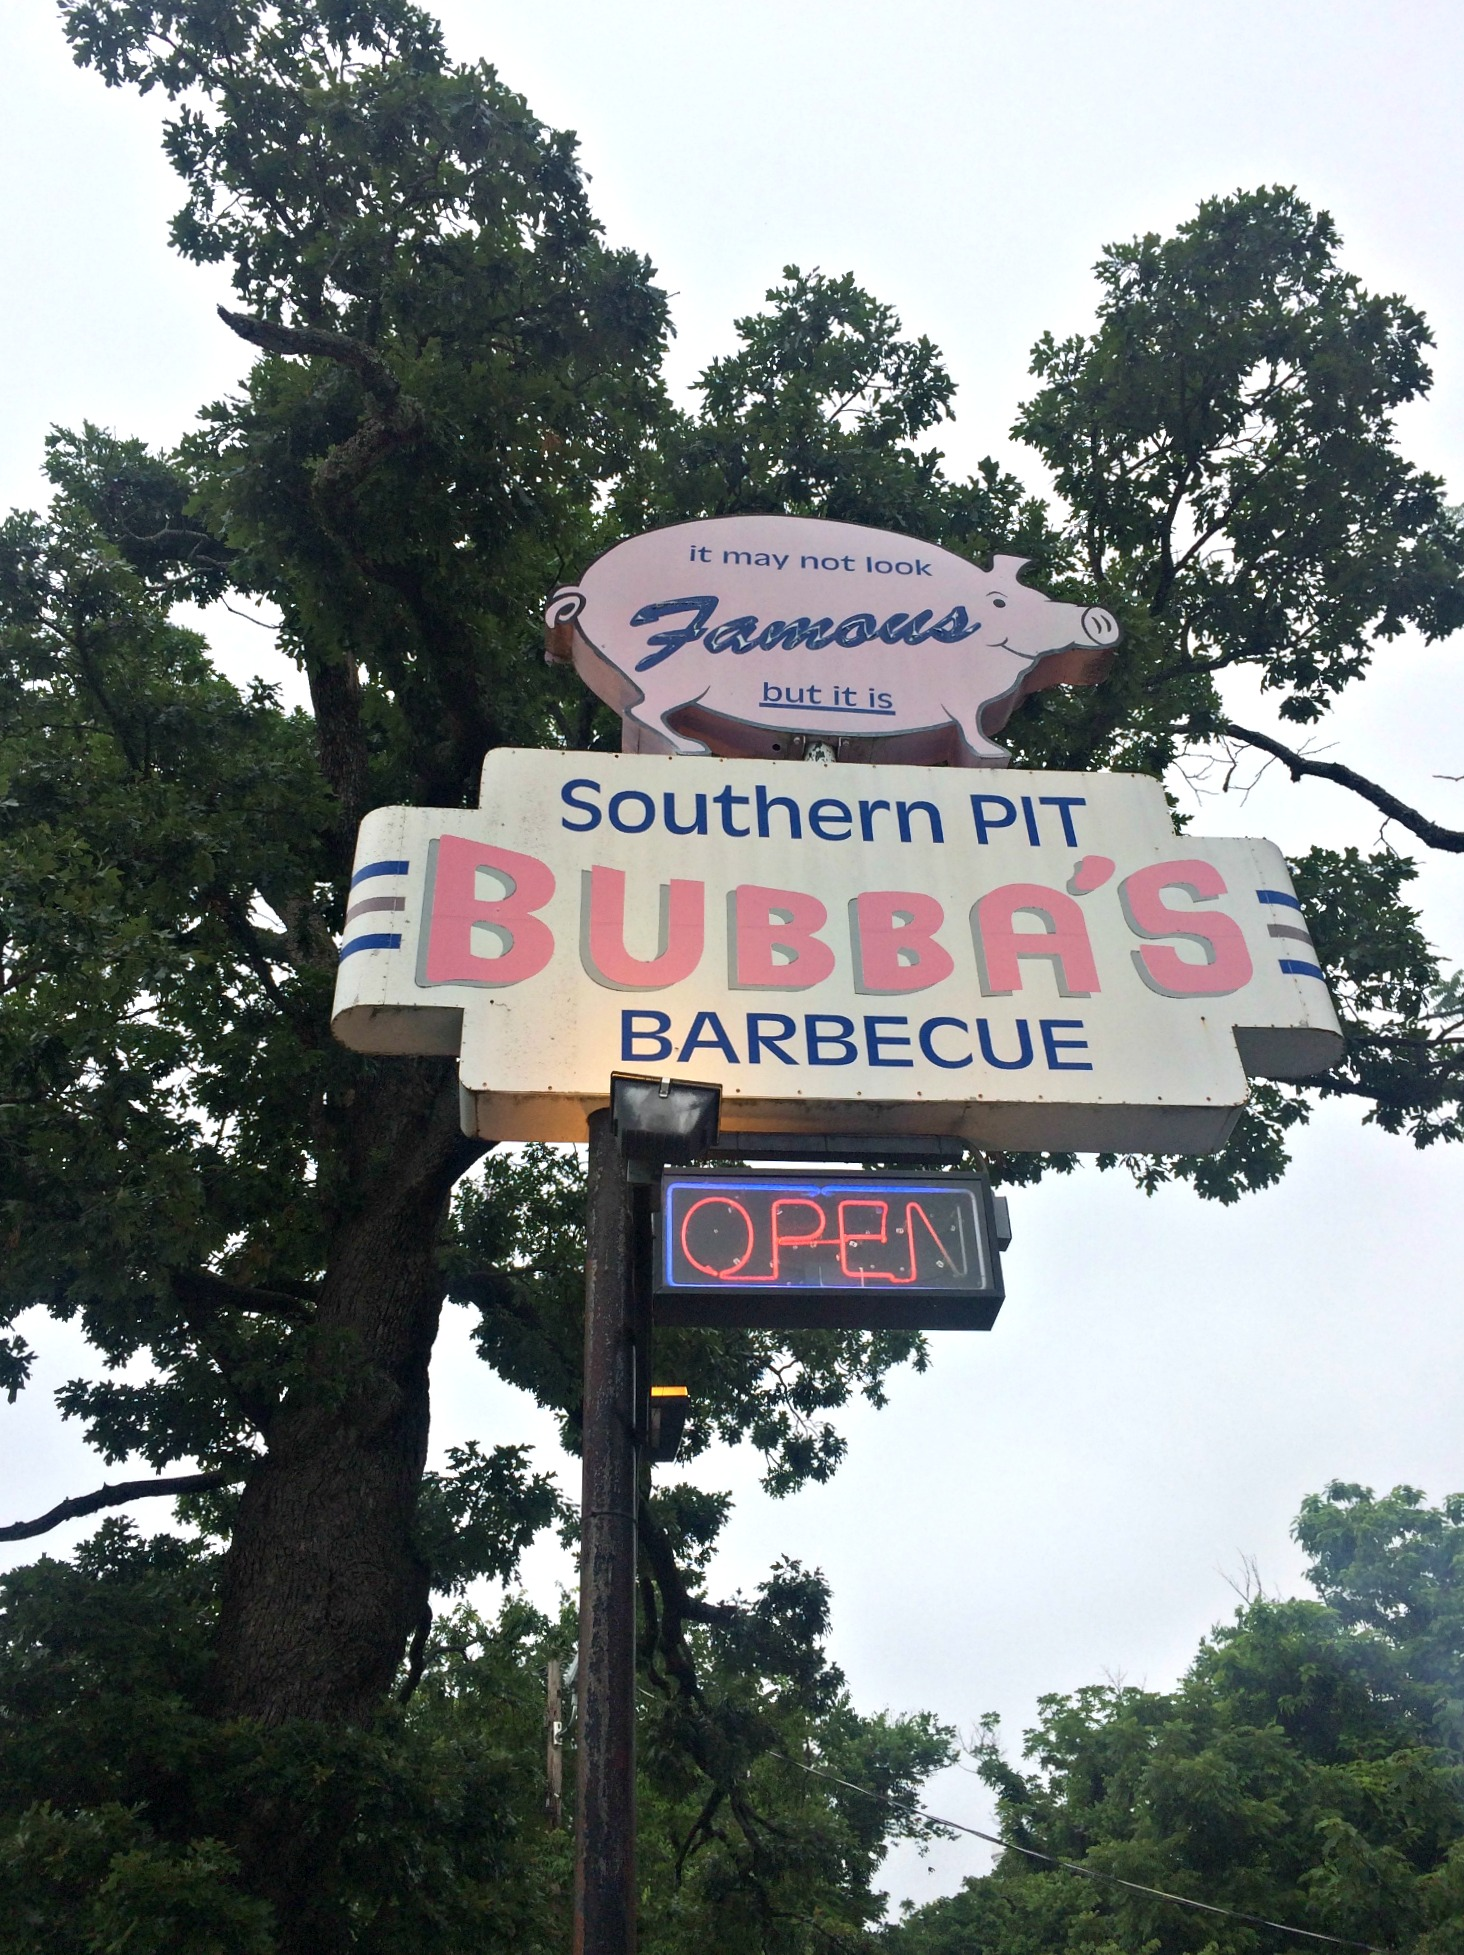 Bubba's Southern Pit Barbecue - Eureka Springs